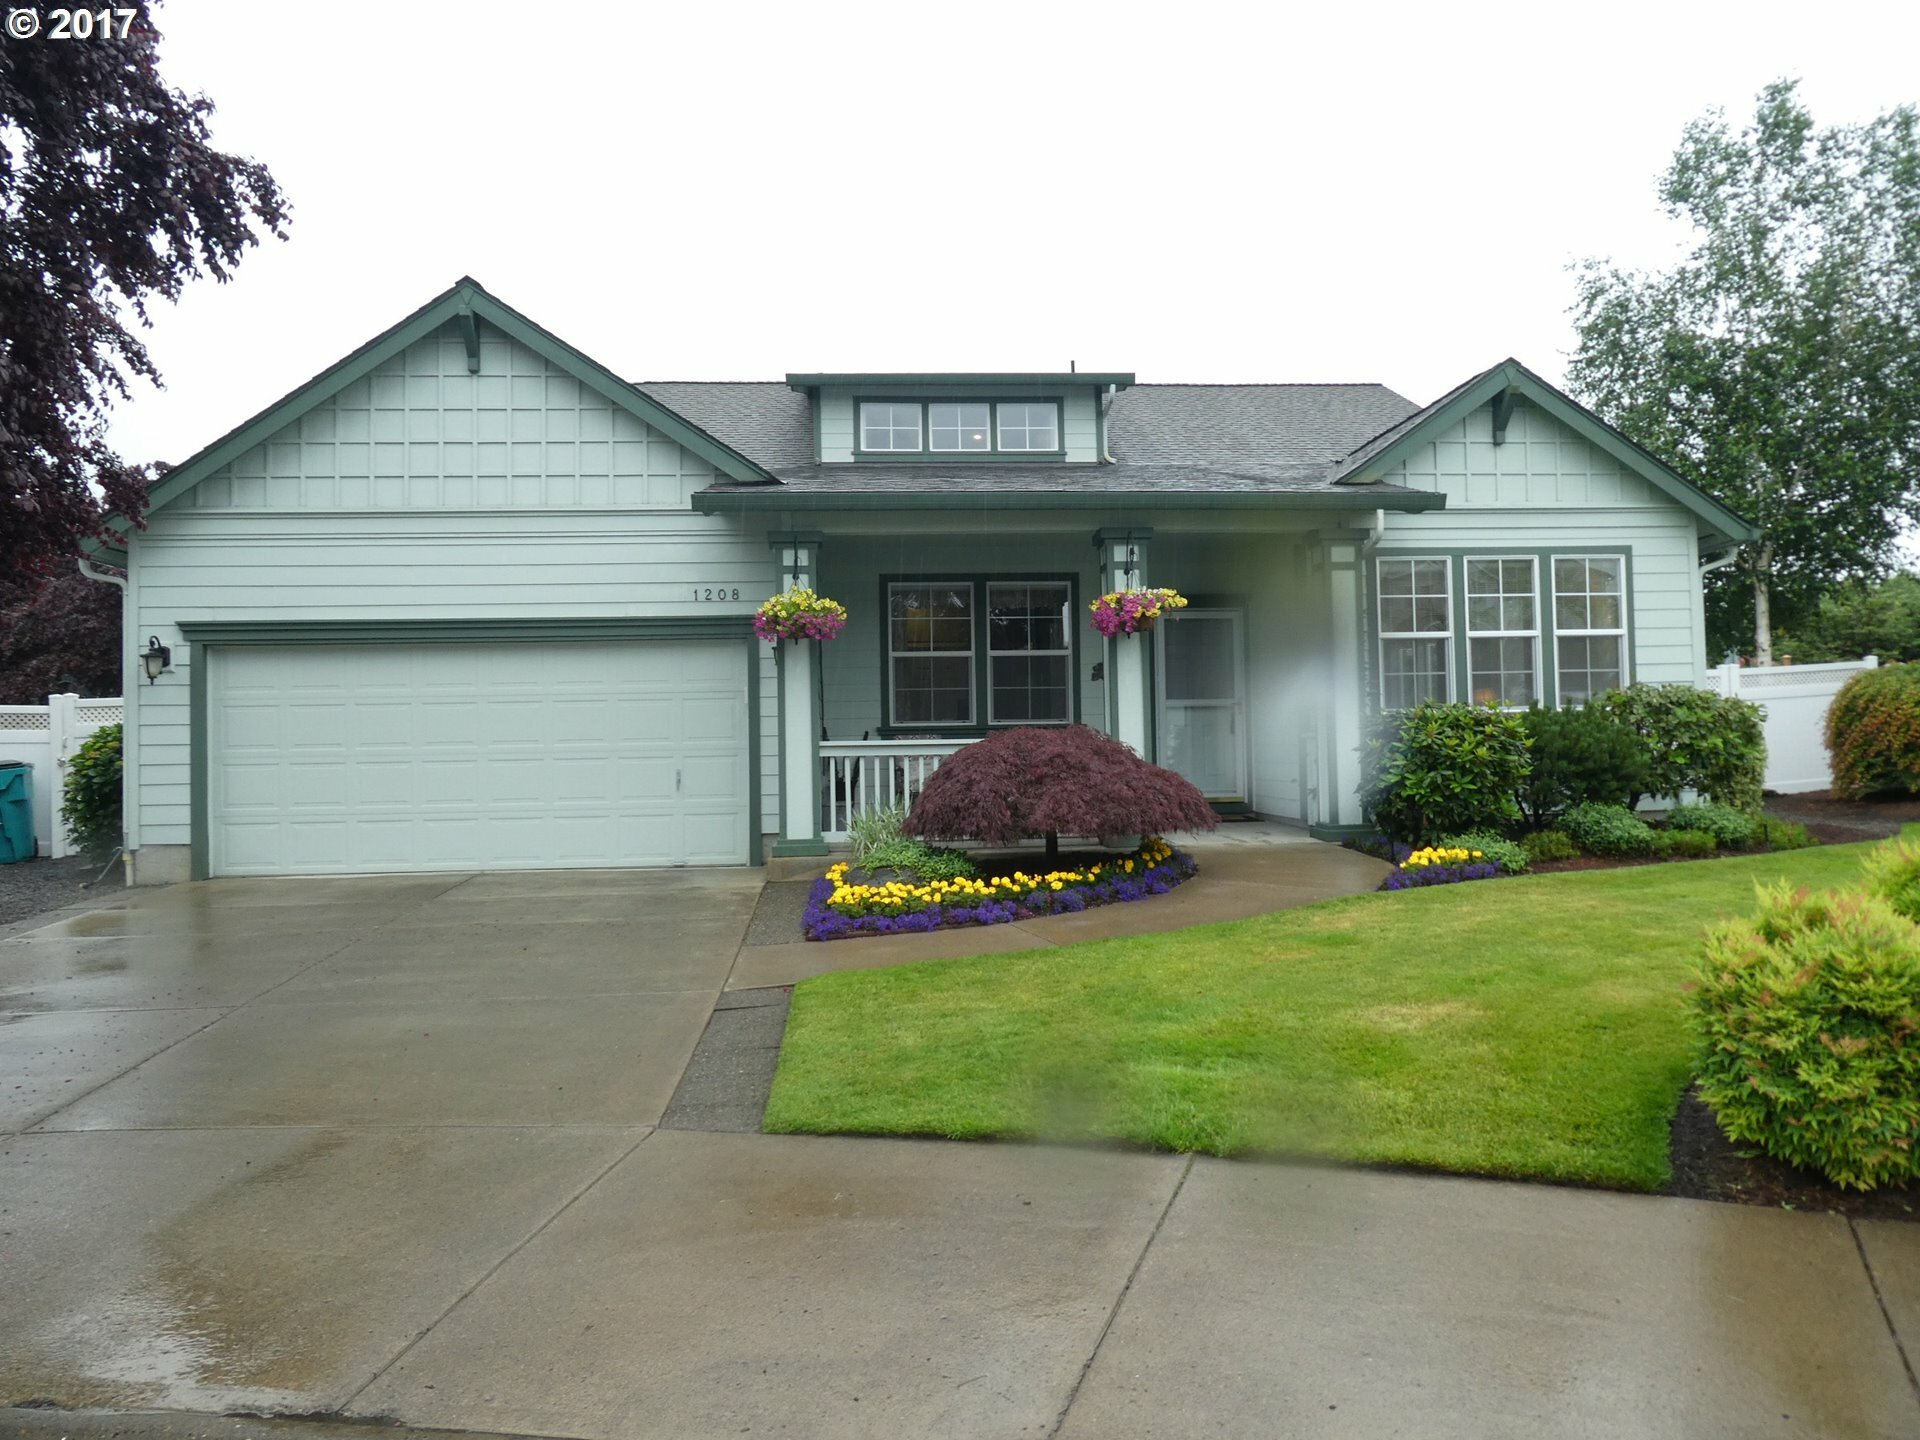 1208 Se 176th Ct, Vancouver, WA - USA (photo 1)